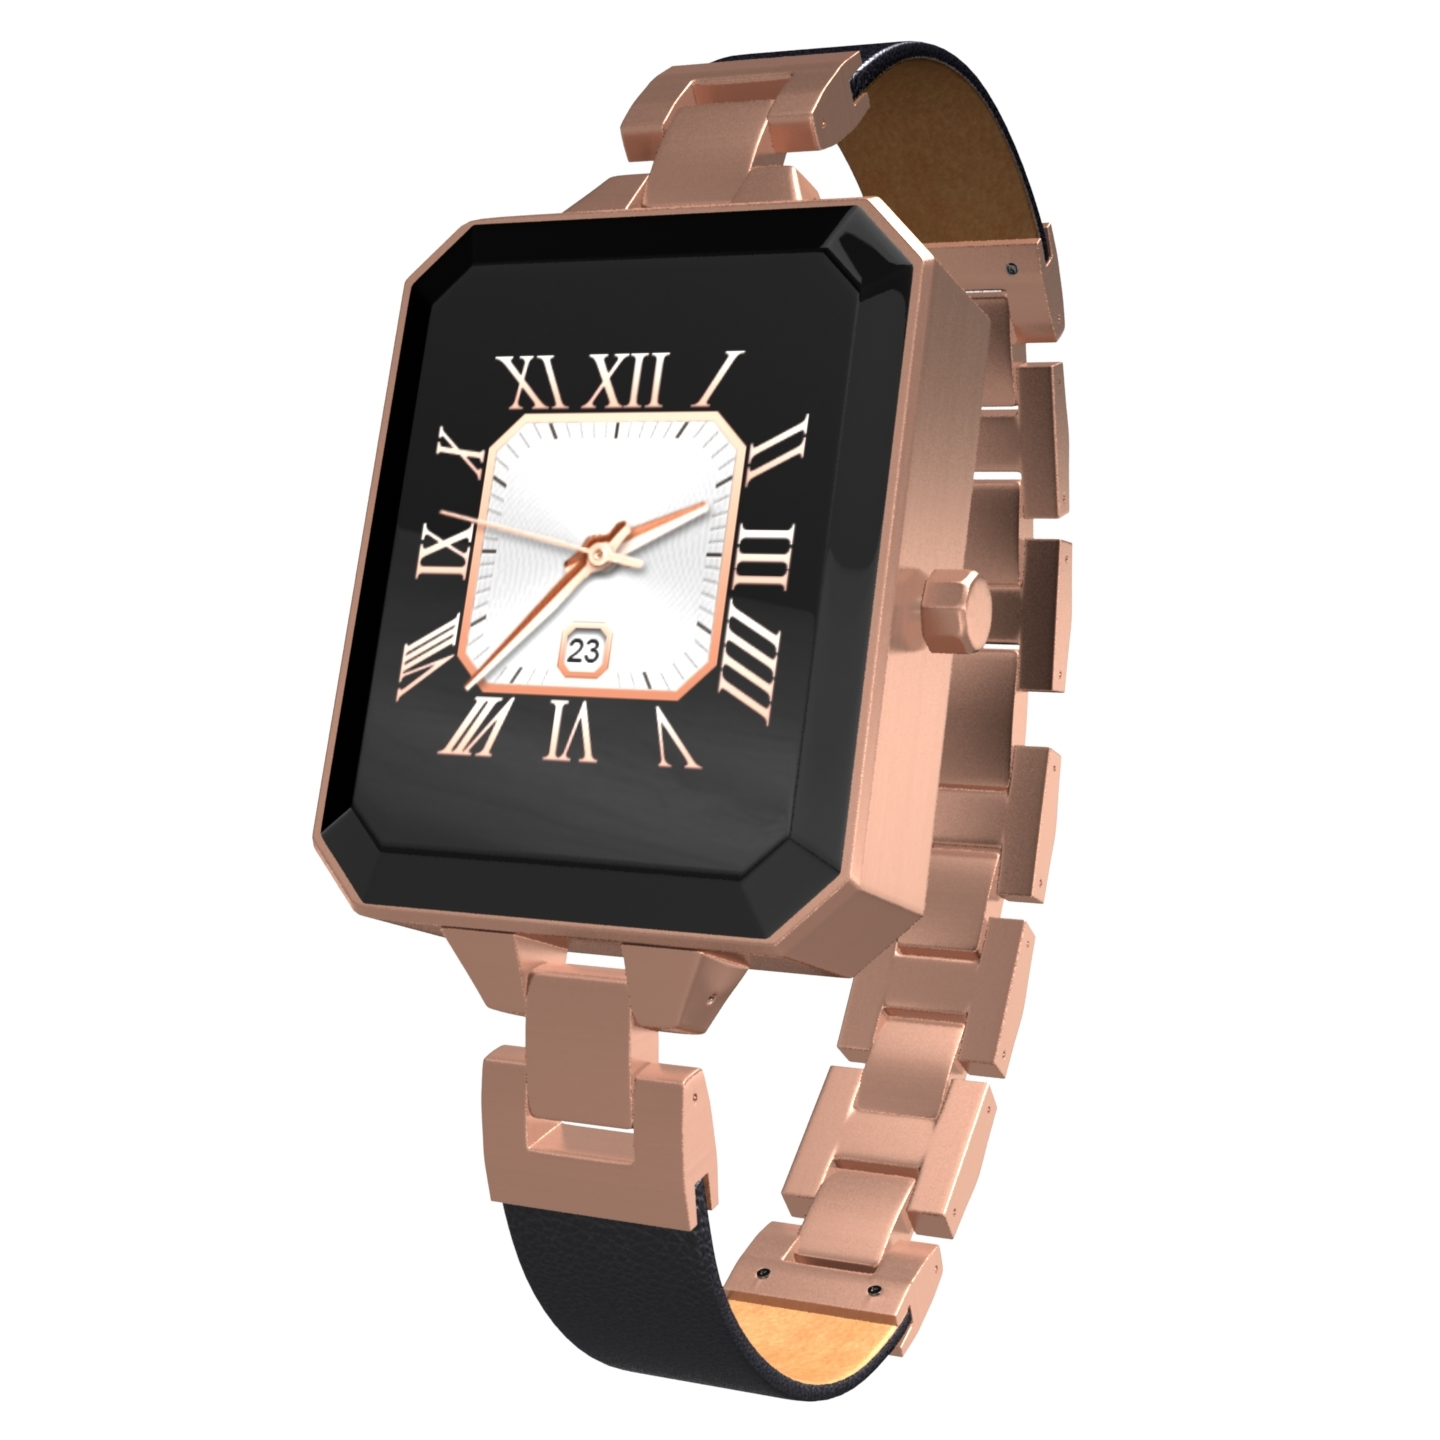 KARACUS K2RG ROSE GOLD DIONE SMART WATCH WITH 6 PATTERN